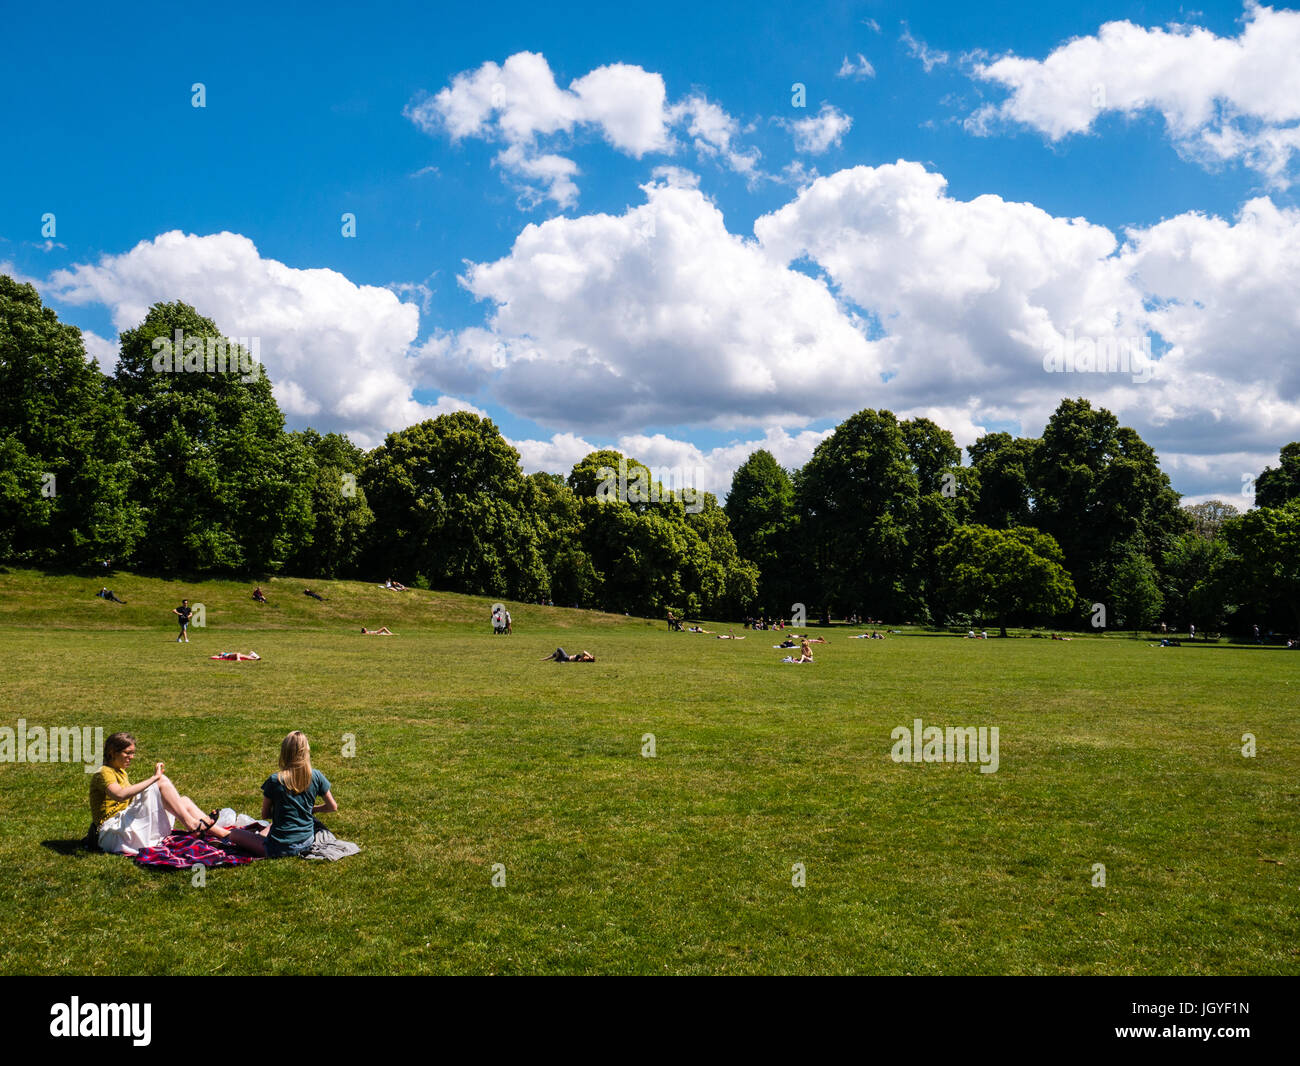 People Relaxing in Kensington Gardens, London, England - Stock Image